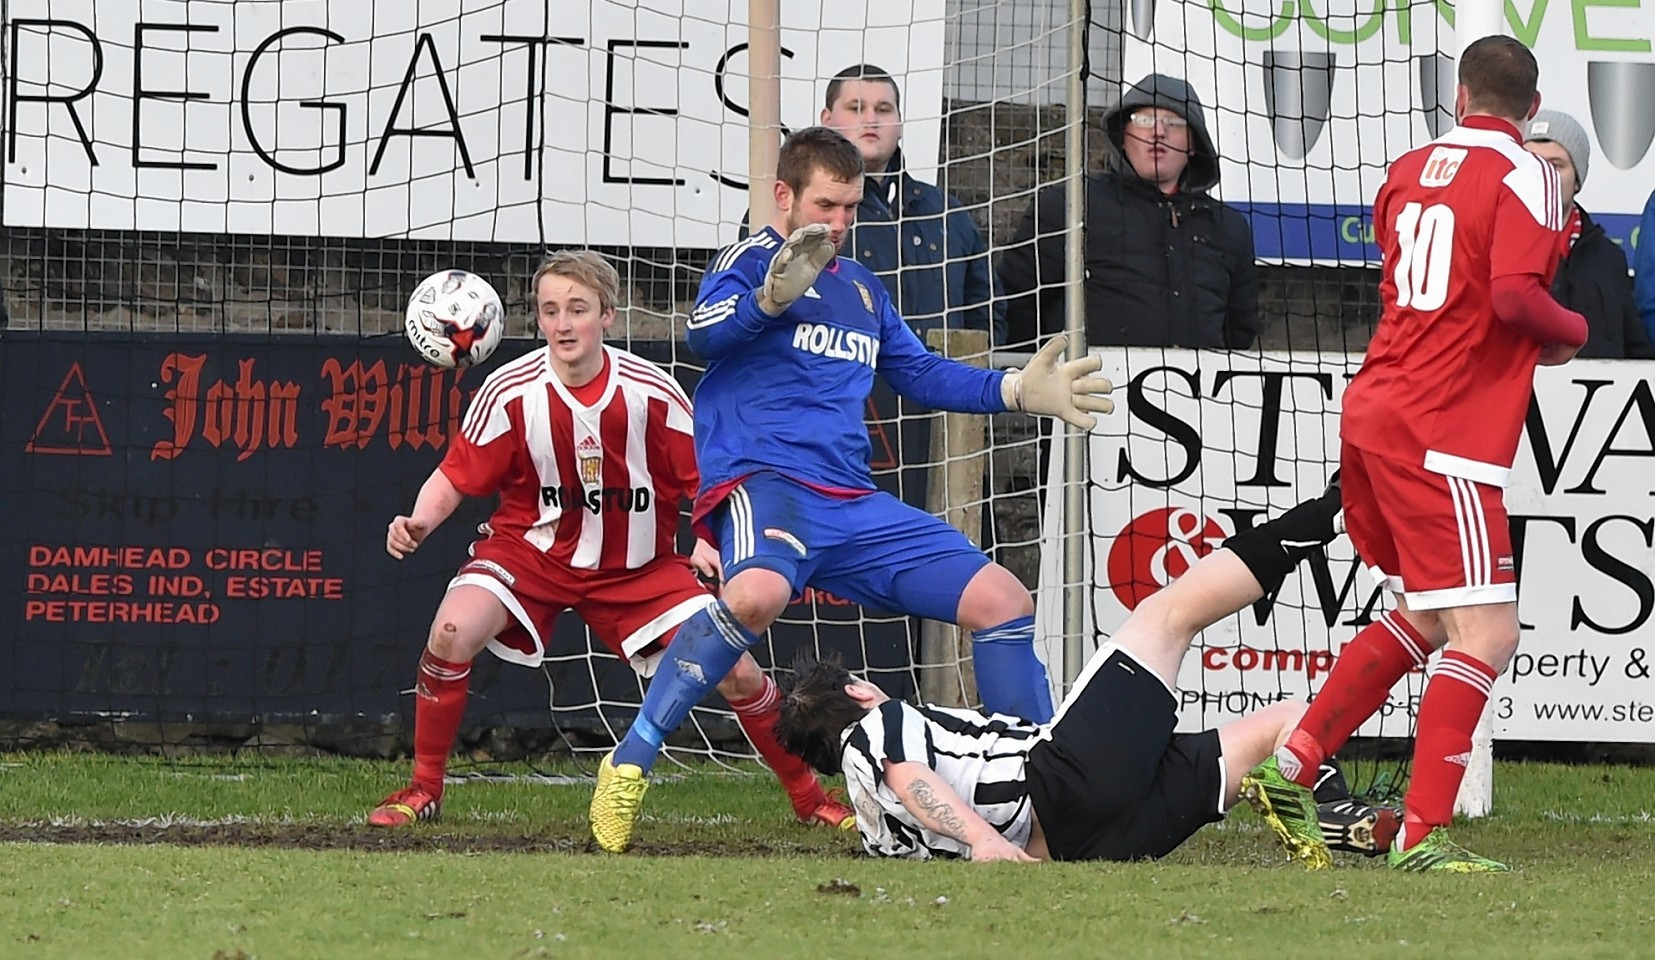 Russell McBride scores for Fraserburgh. Picture by Colin Rennie